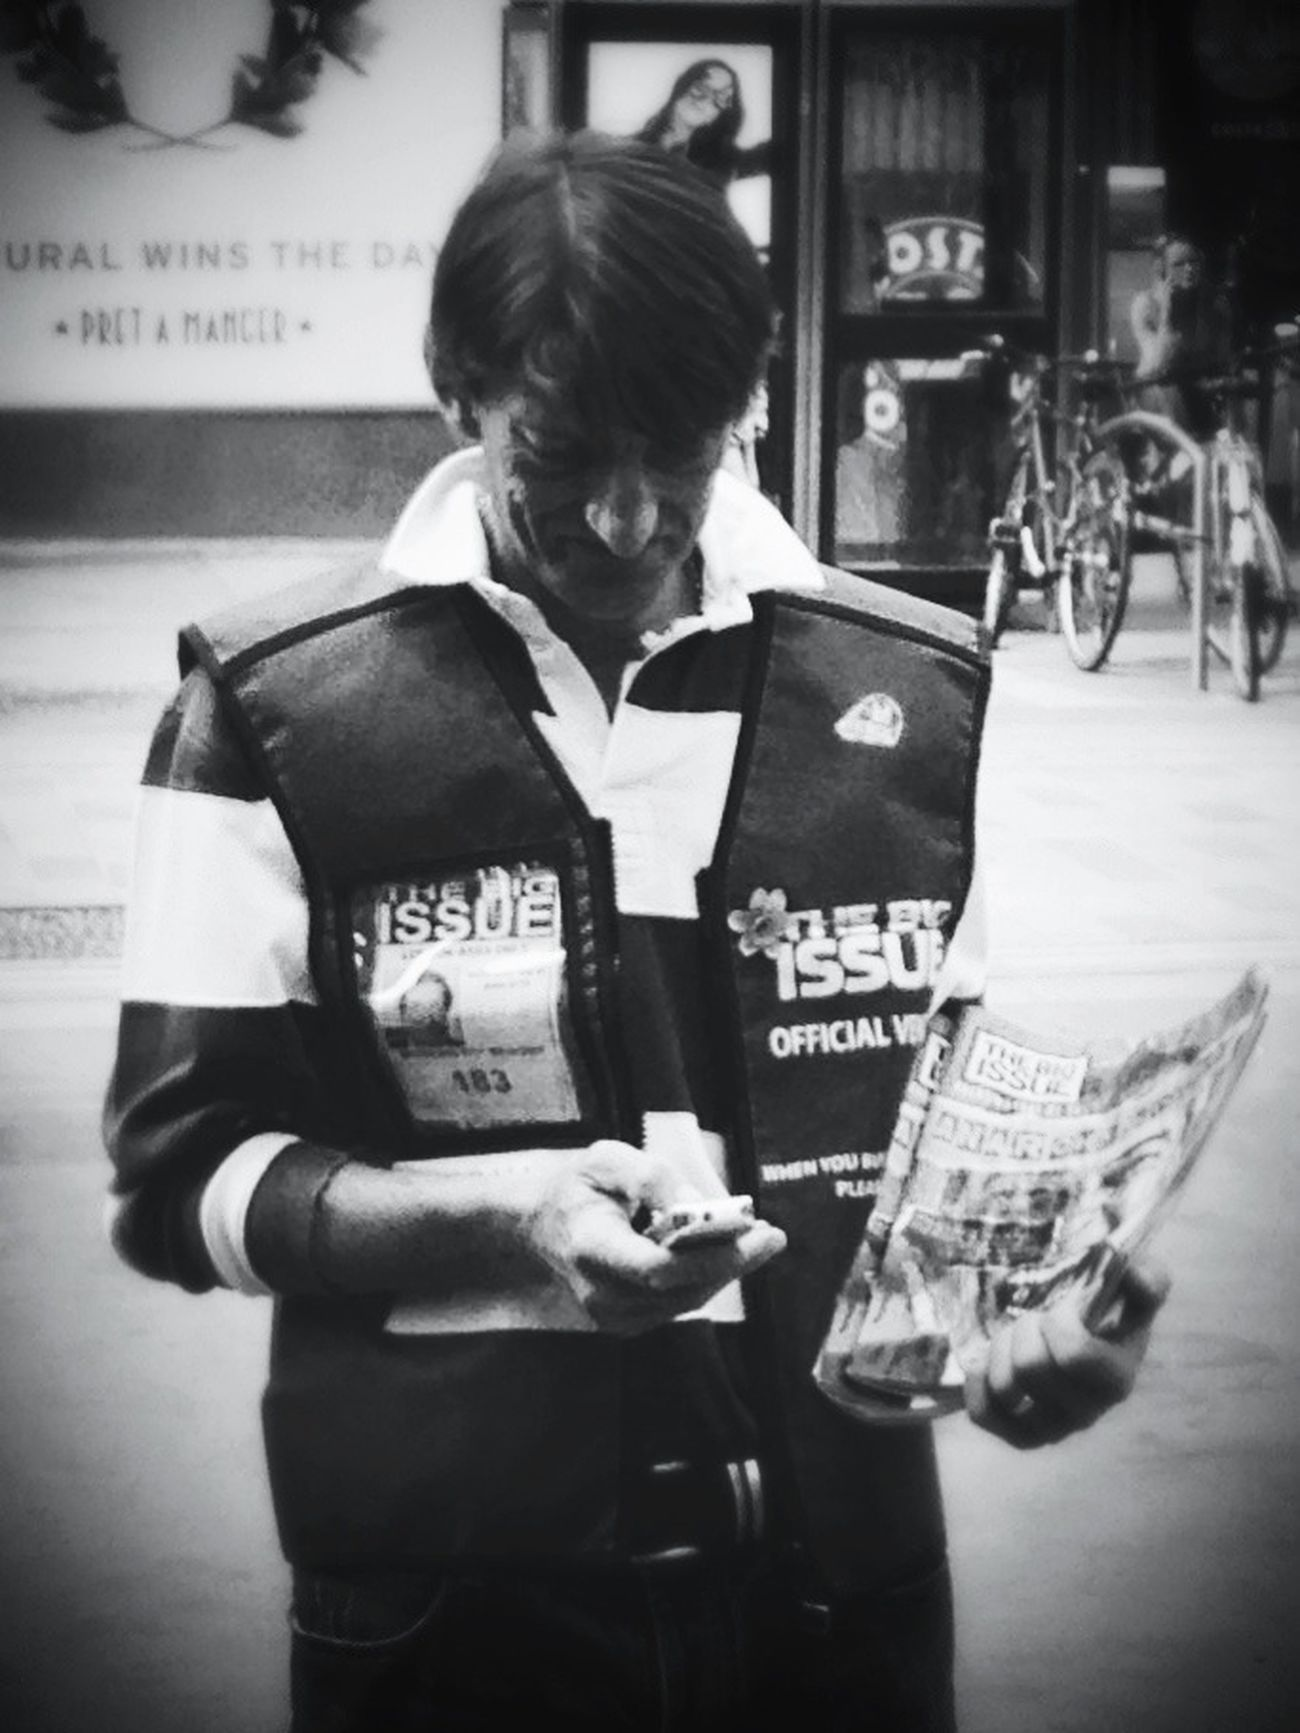 The Big Issue Series